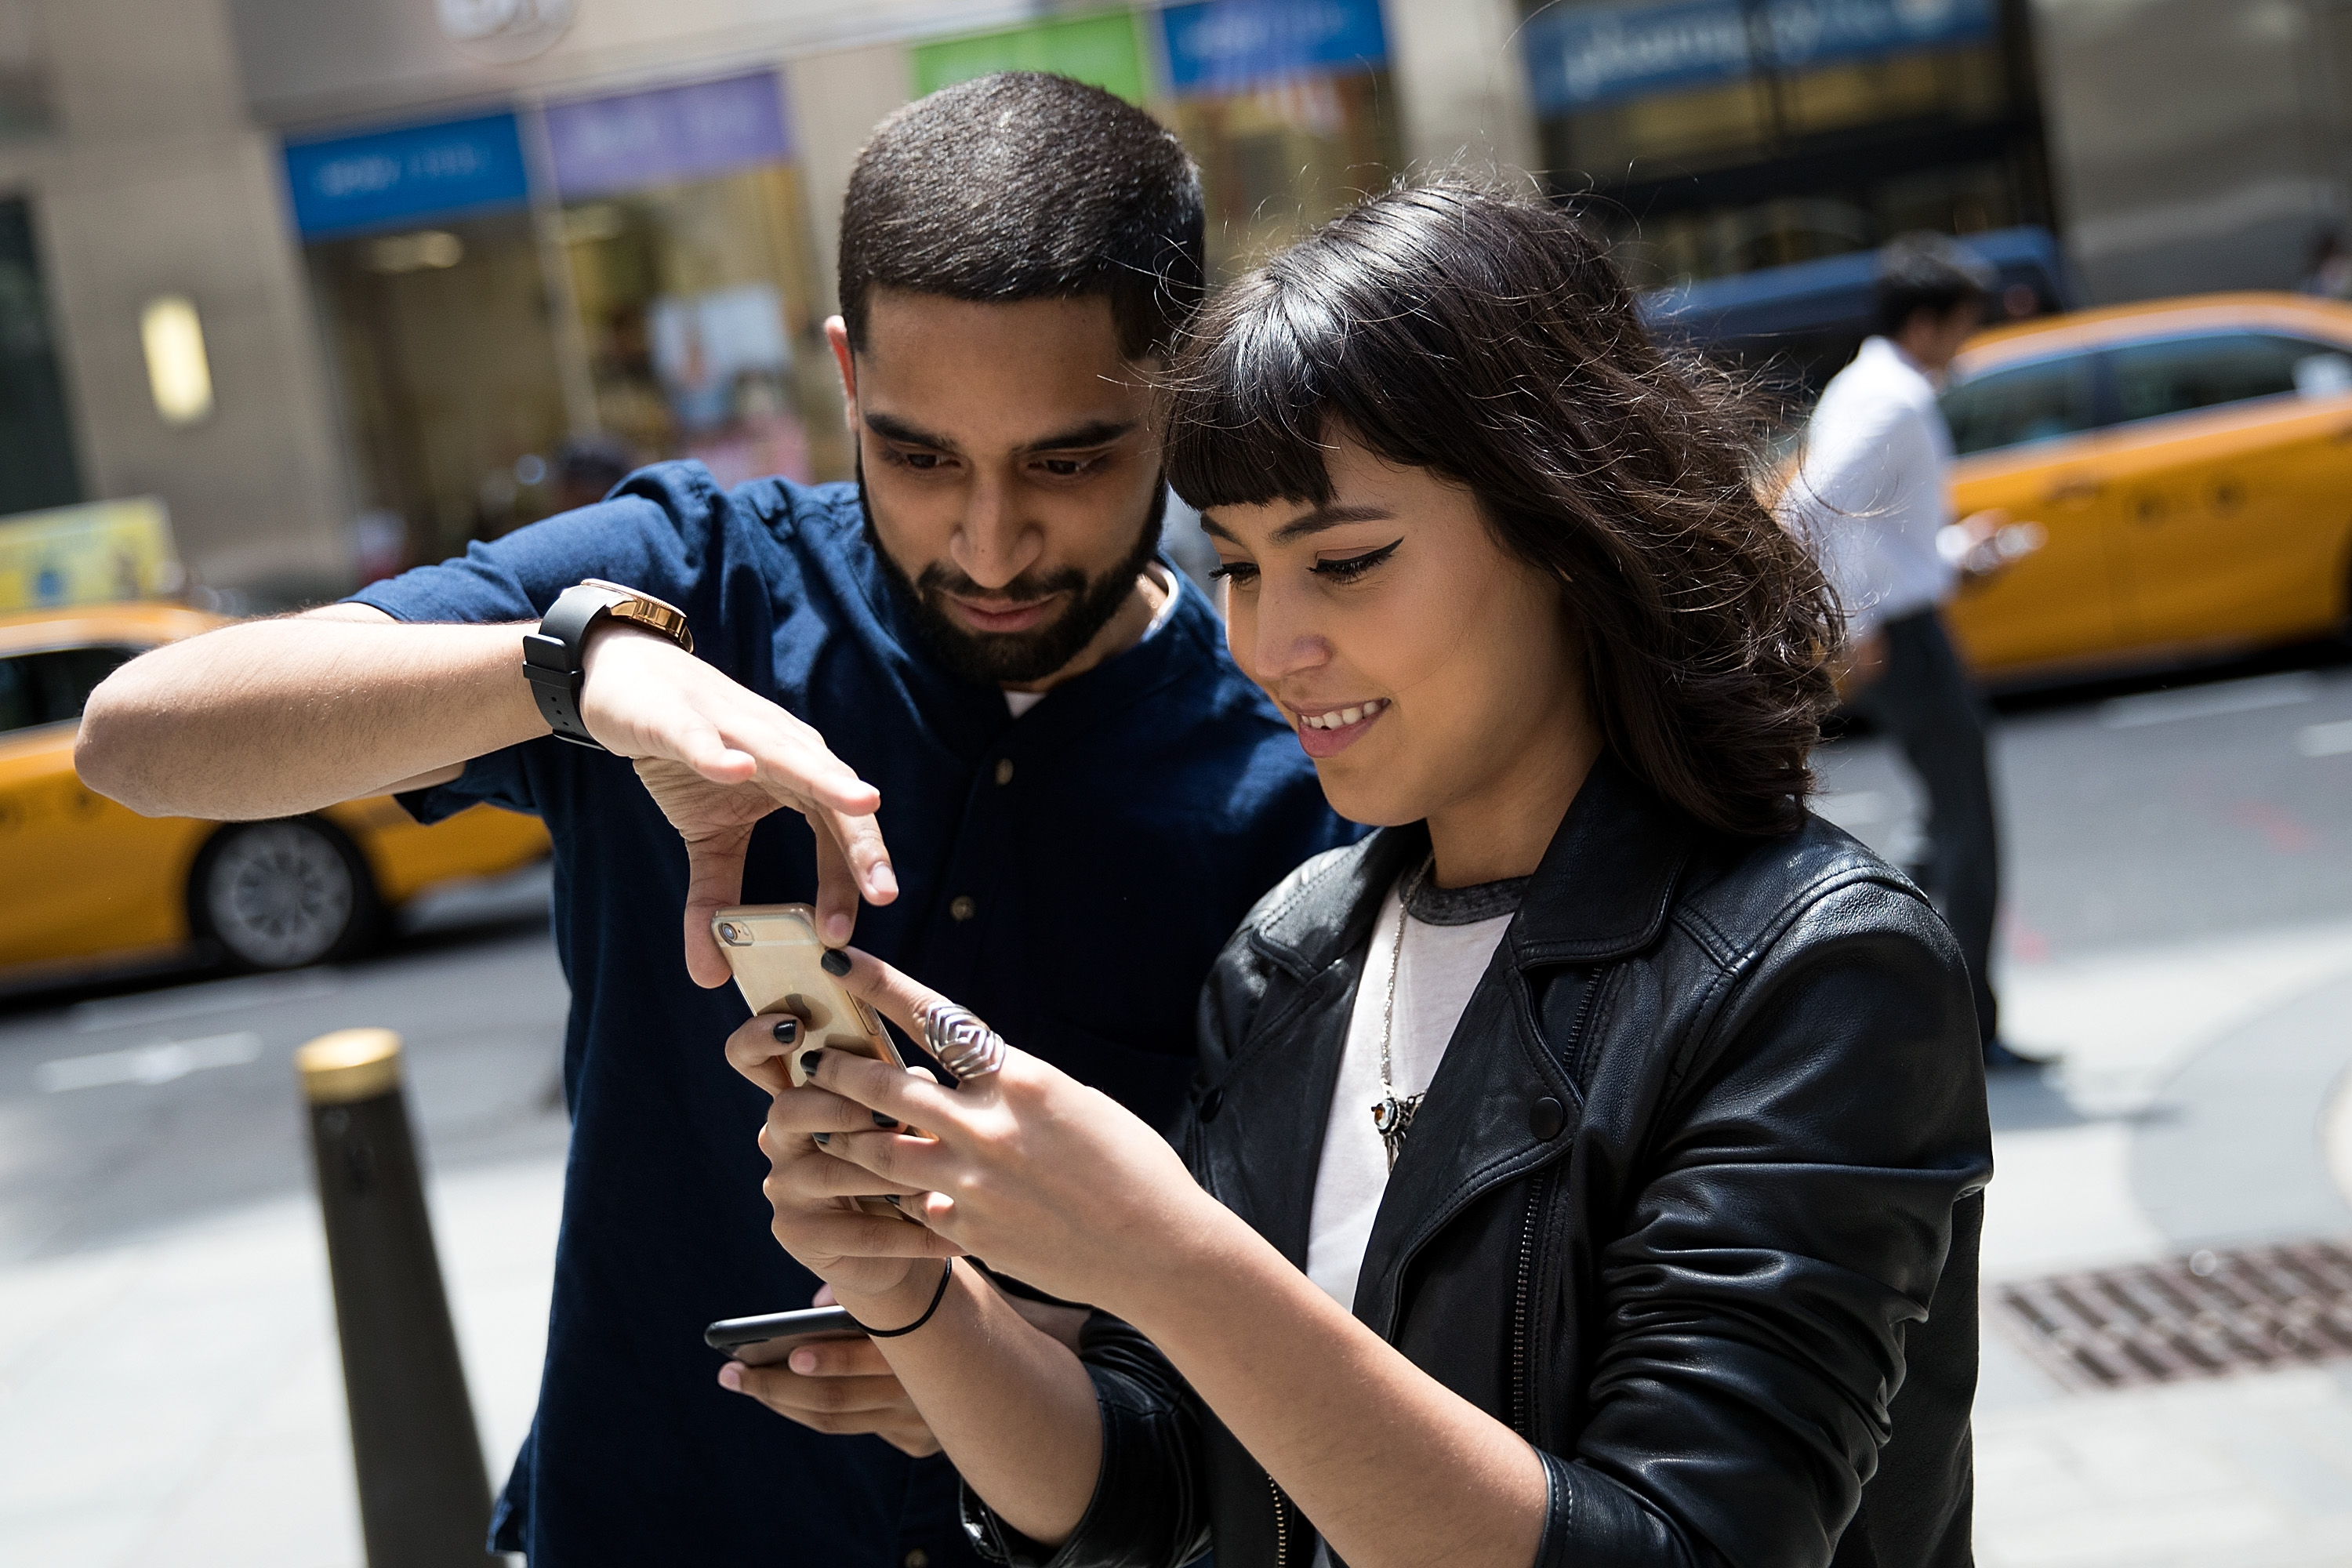 Sameer Uddin and Michelle Macias play Pokemon Go on their smartphones outside of Nintendo's flagship store, July 11, 2016 in New York City.